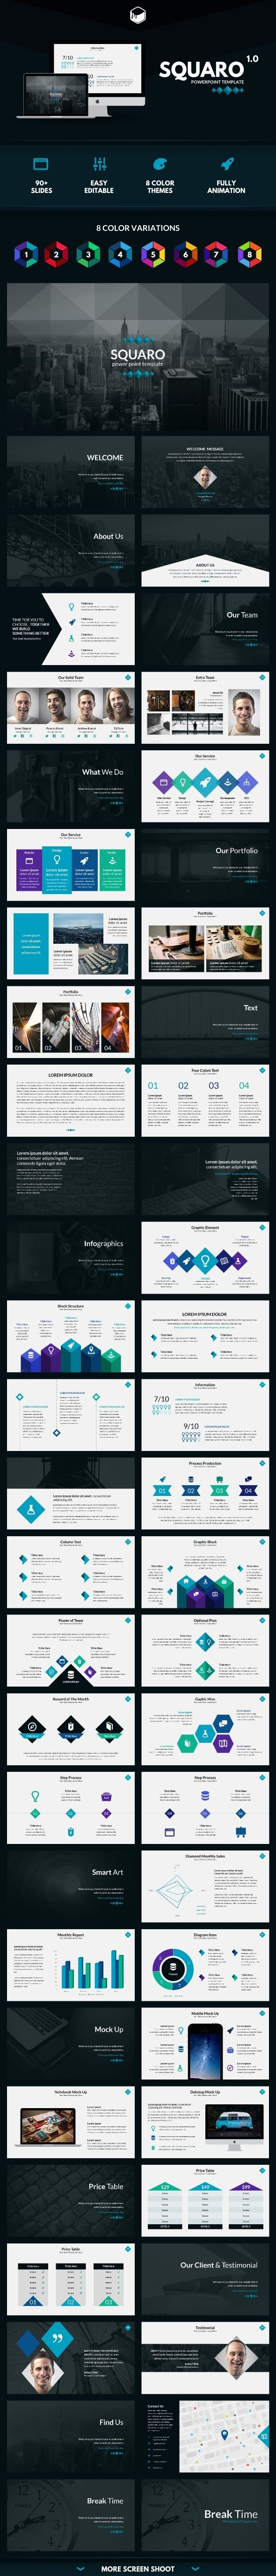 Squaro - PowerPoint Template #presentation Download: http://graphicriver.net/item/squaro-powerpoint-template/11408642?ref=ksioks